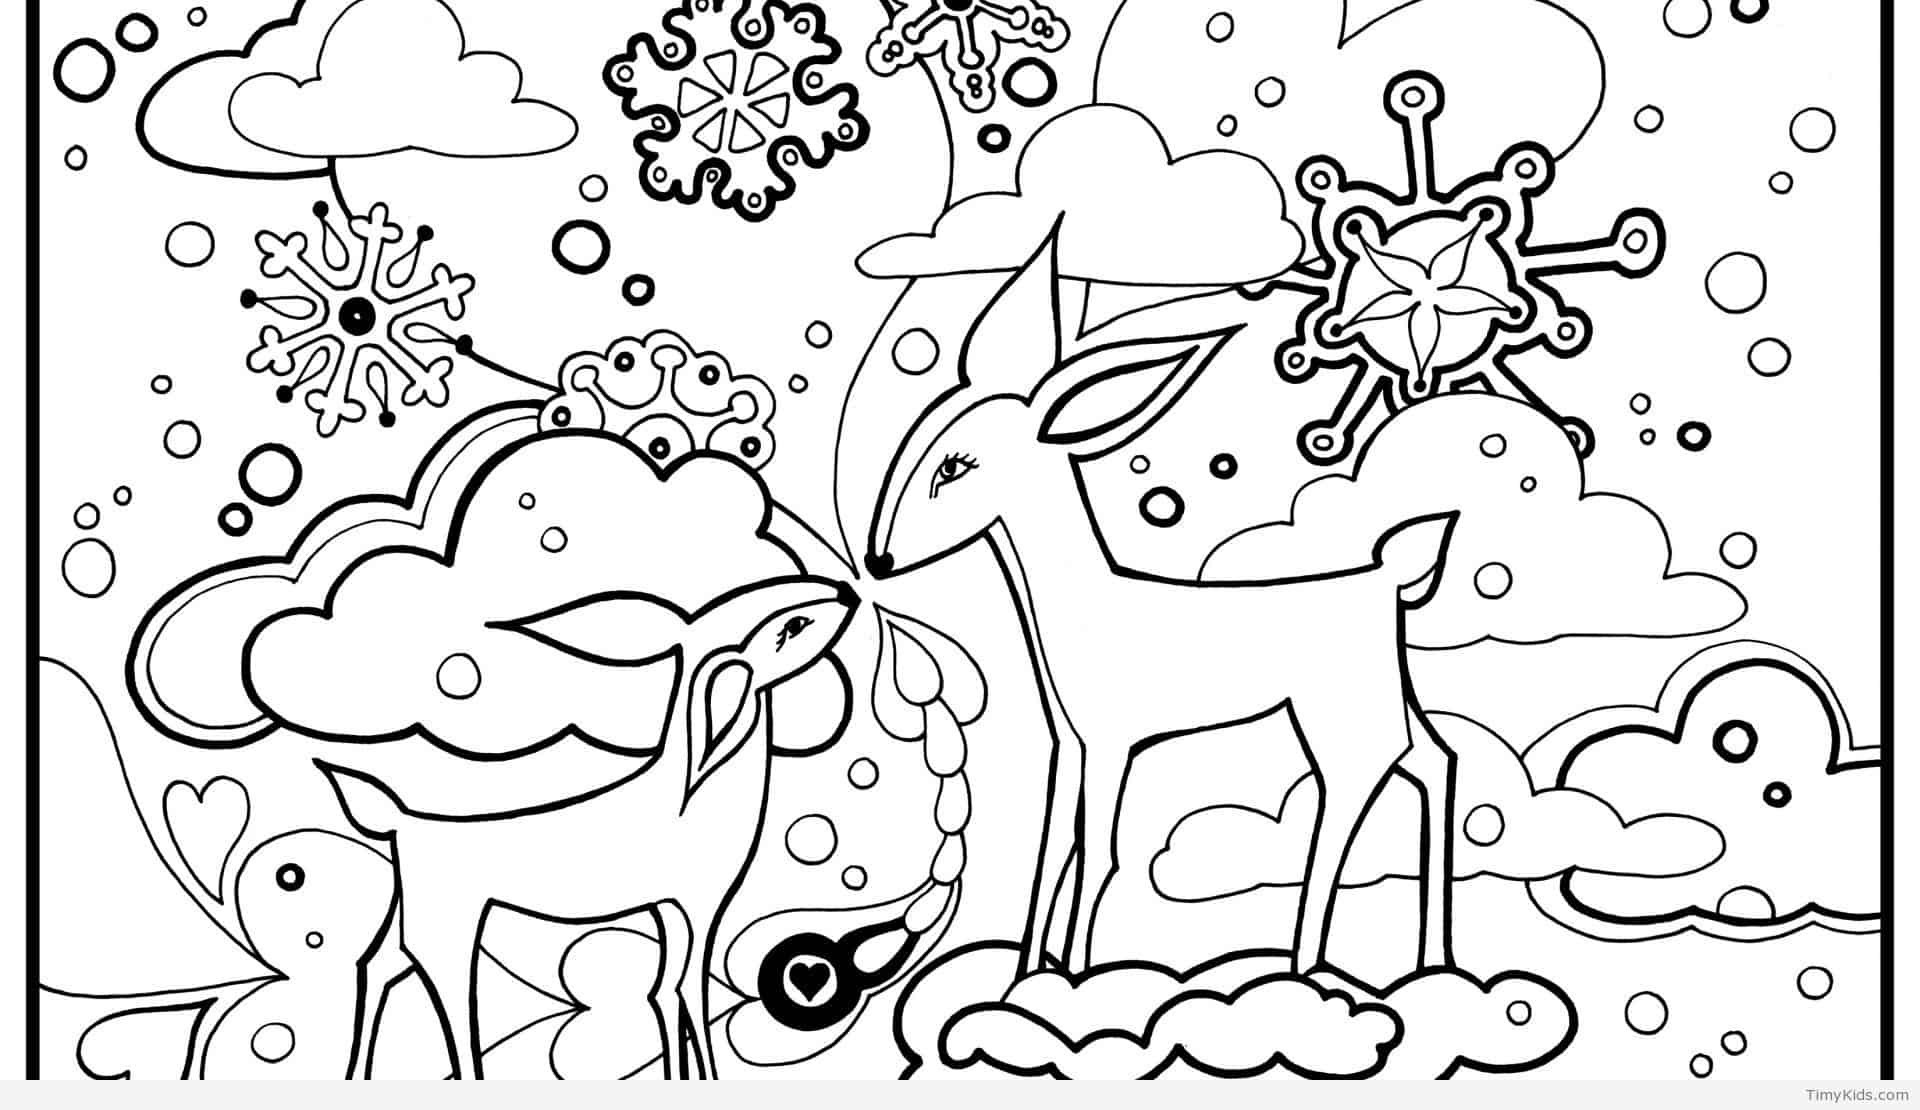 animals in winter coloring pages effortfulg winter animal coloring pages animals winter coloring in pages